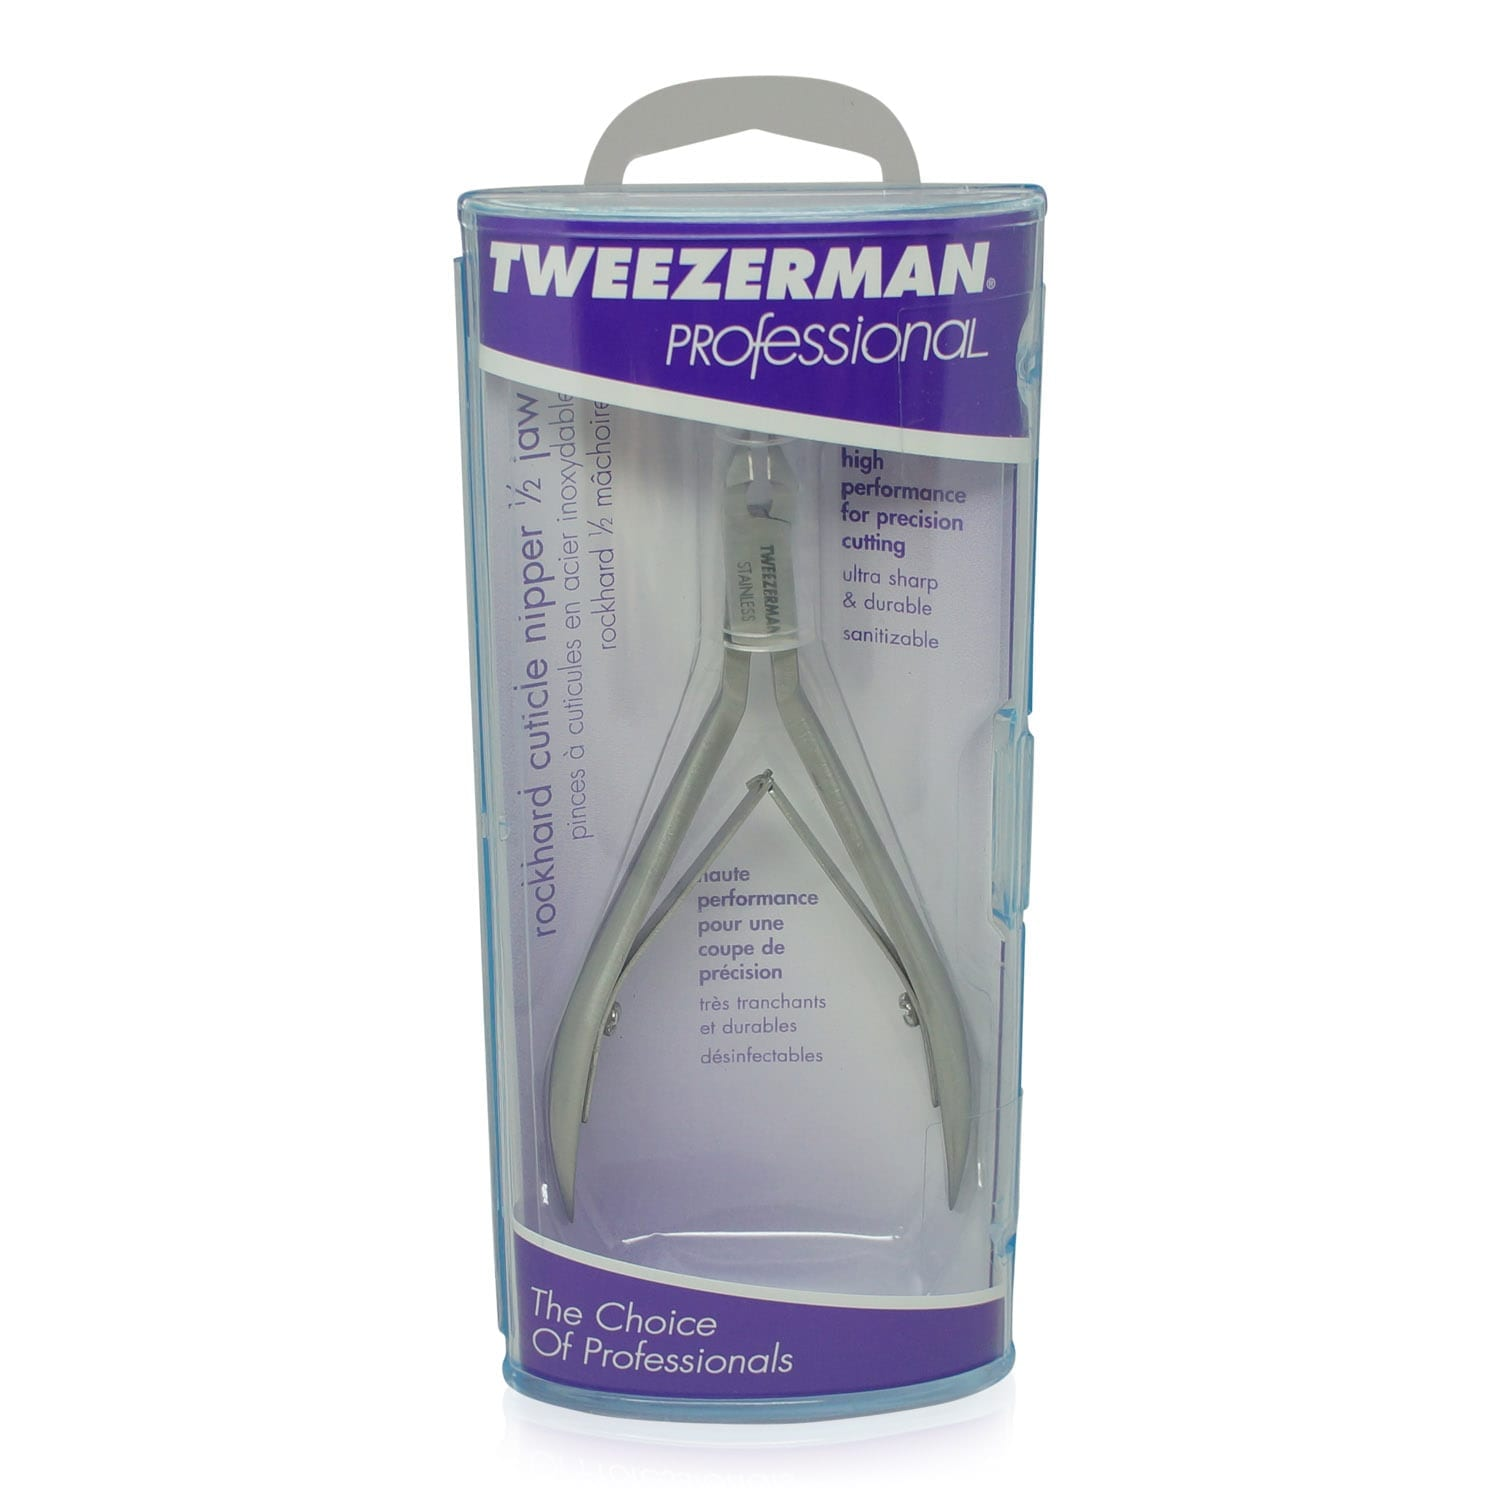 Tweezerman Rockhard Cuticle Nipper 1/2 Jaw - Professional